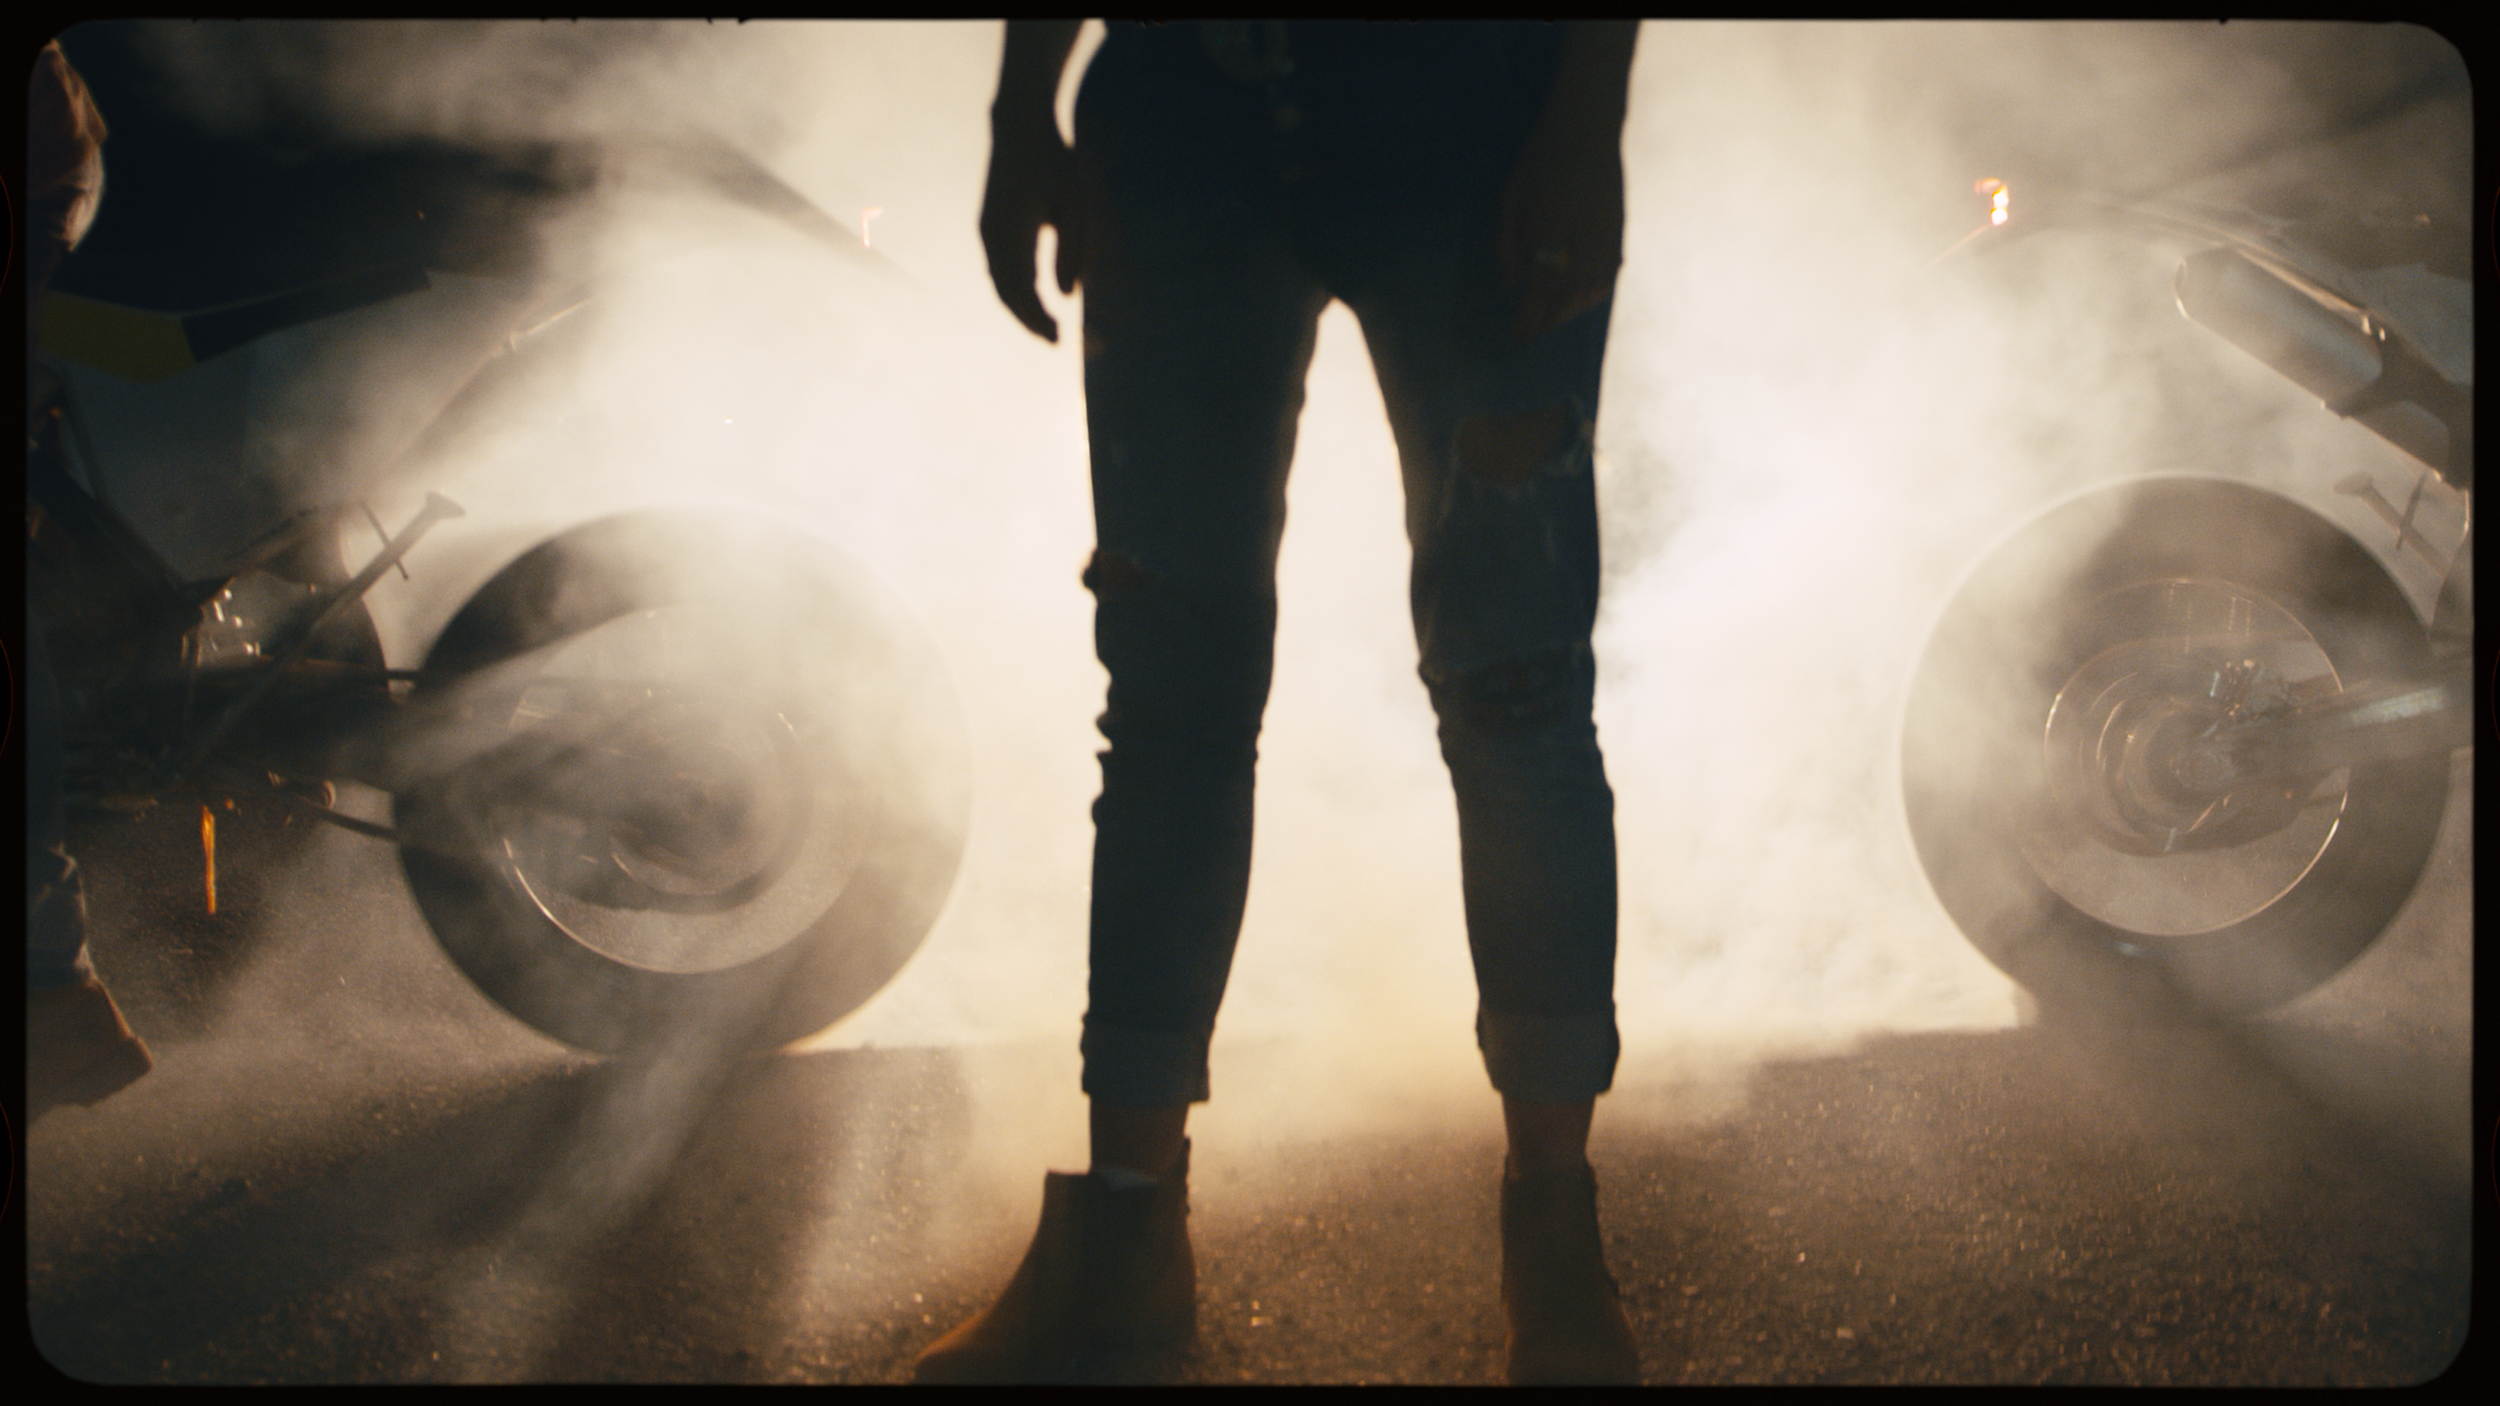 dirt bike rider performs wheelie in clouds of dust by Omri Ohana Artgrid.00_00_36_18.Still001.png